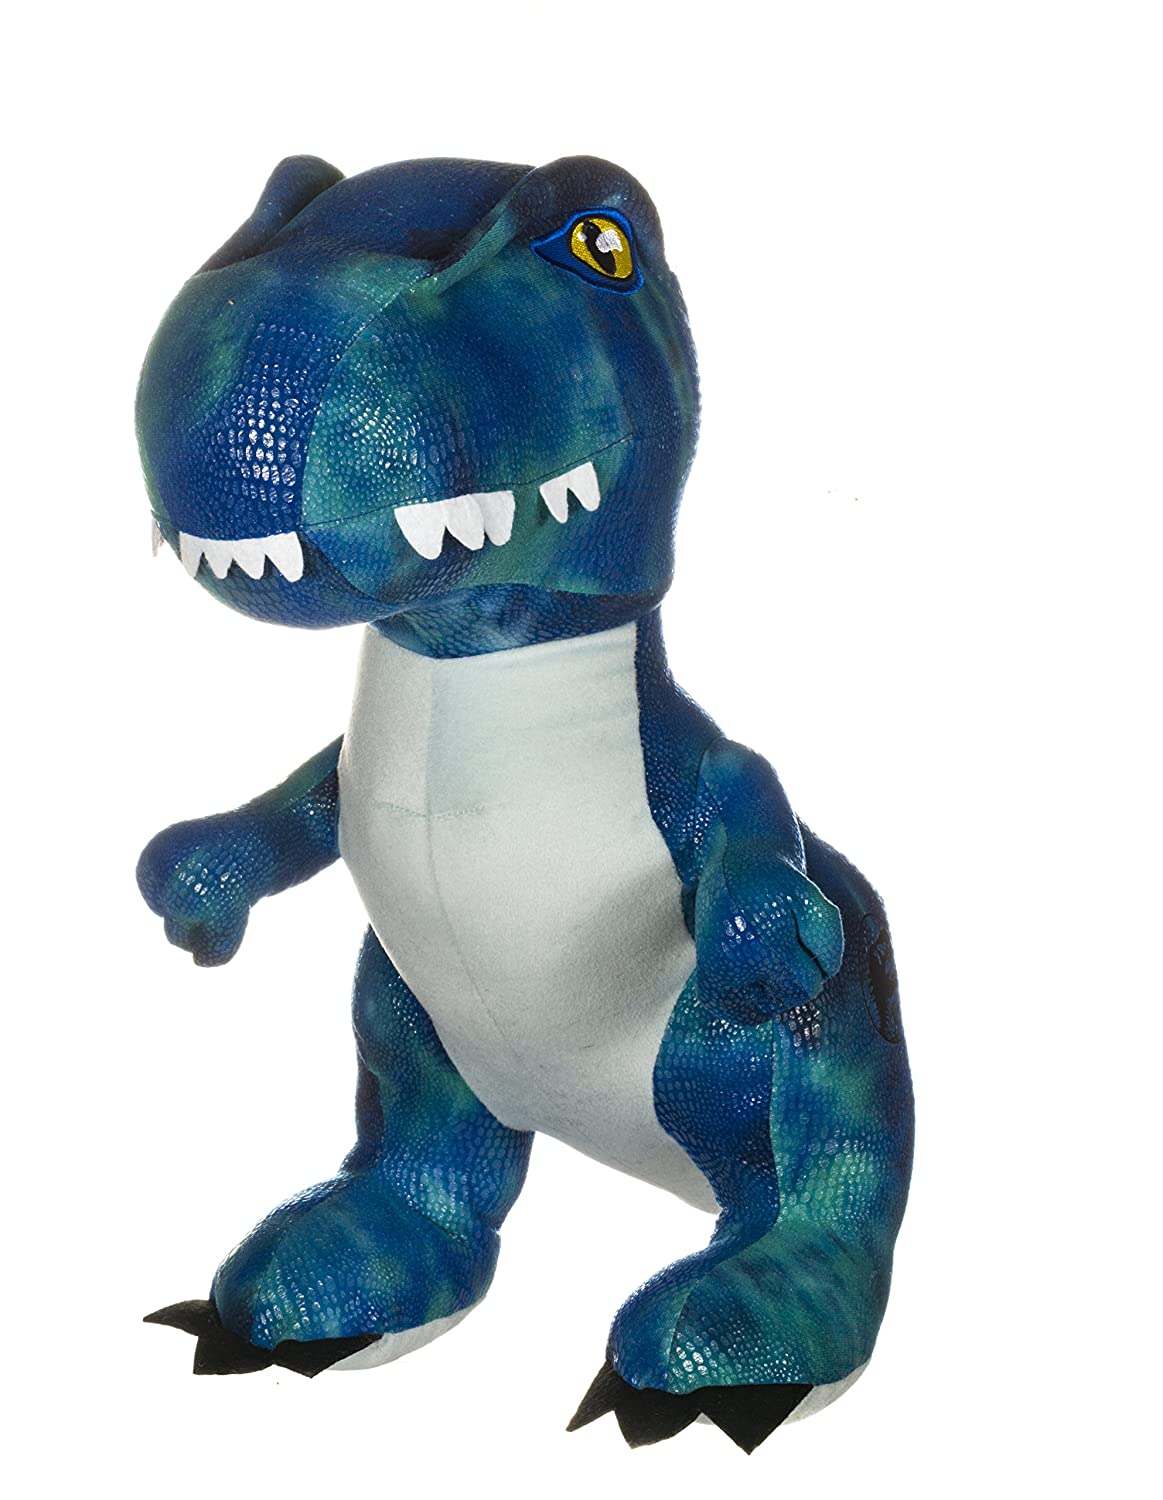 Posh Paws 37456 JW2 Jurassic World 2 Blue Raptor - Pajarita (Talla única), Color Azul: Amazon.es: Juguetes y juegos